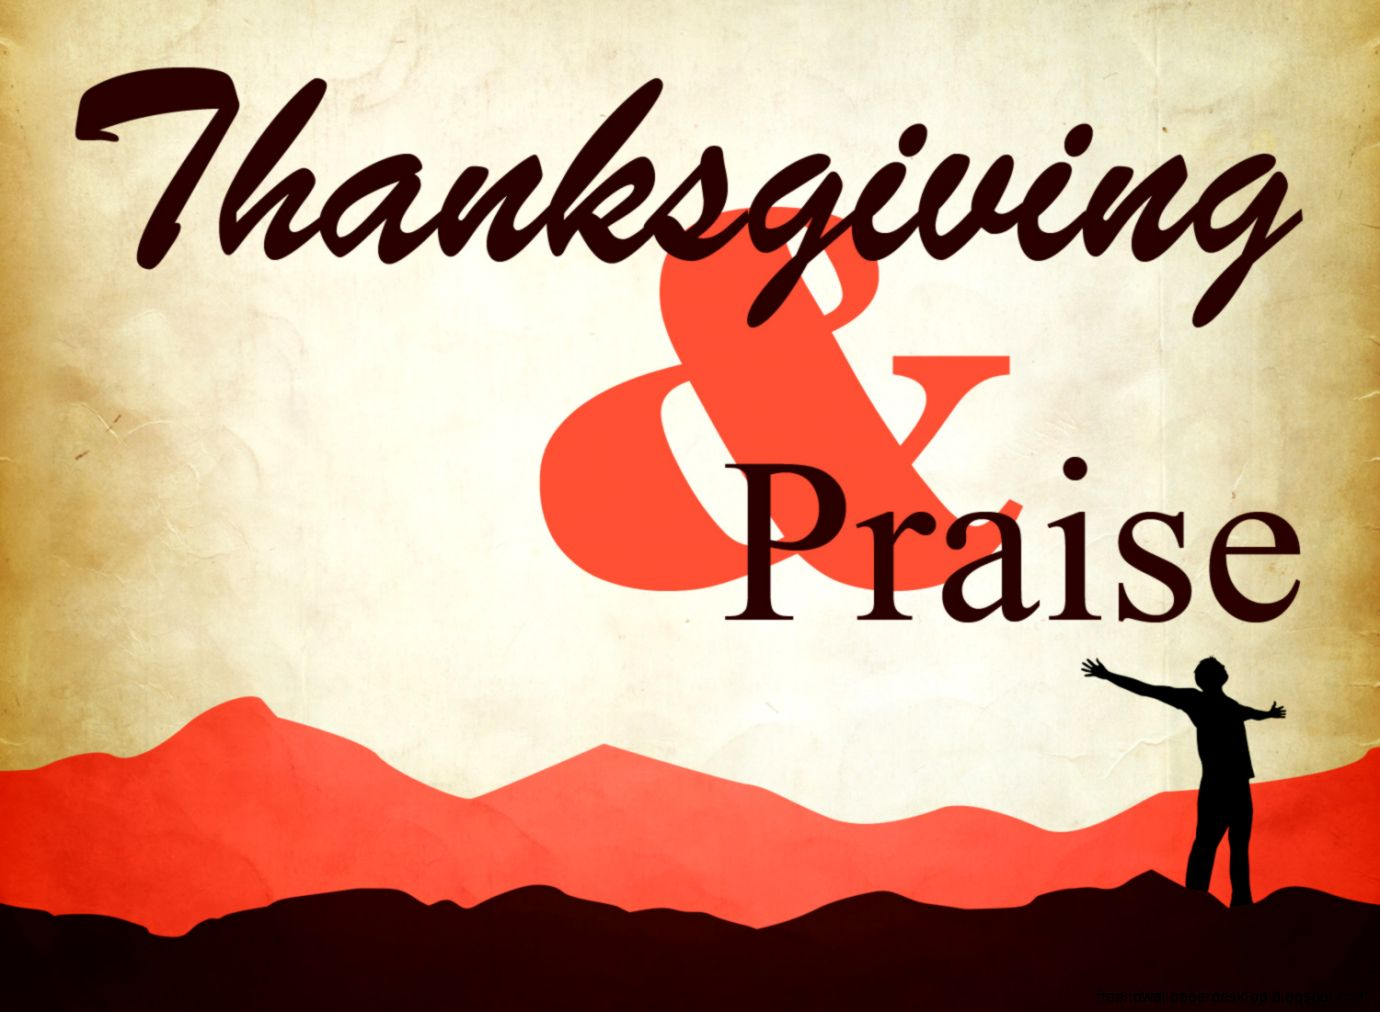 Thanksgiving Praise | Free High Definition Wallpapers